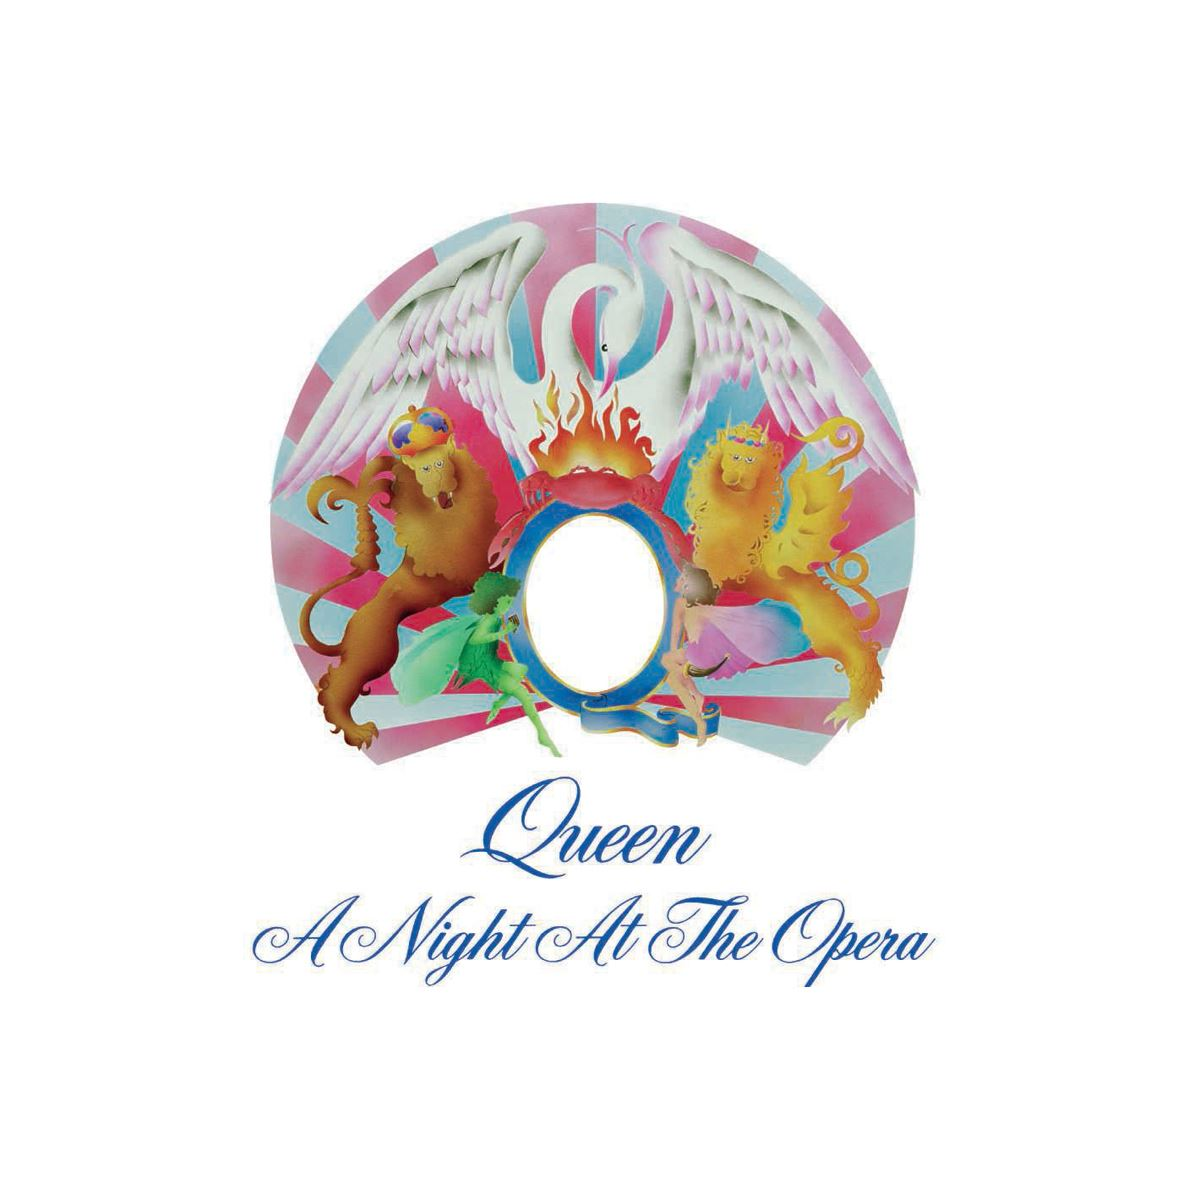 Cd2 queen a night at the opera (deluxe)  - Sanborns